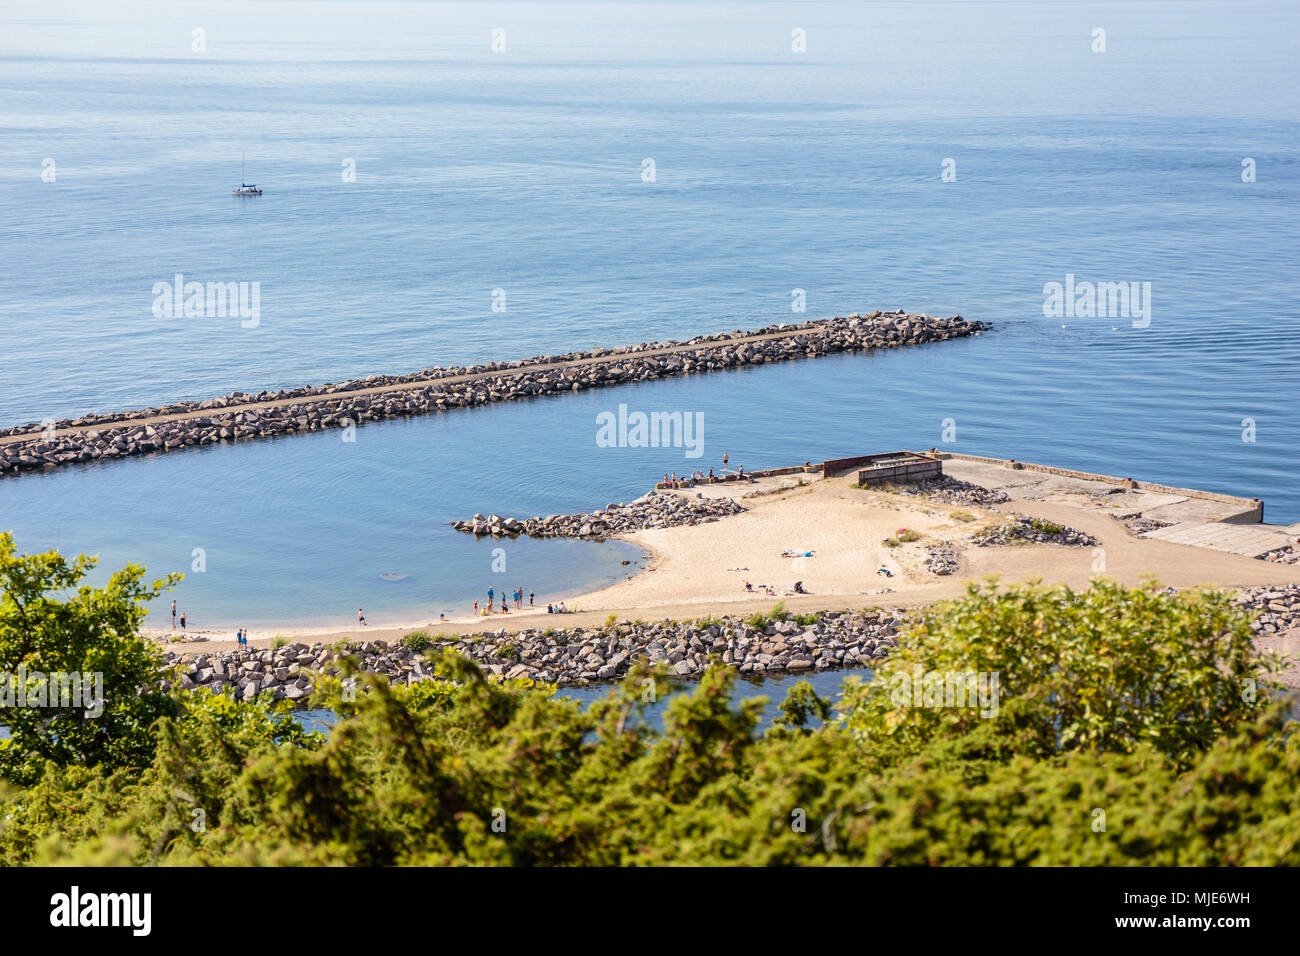 Bathers at the pier of Vang, former port of debarkation of the granite quarry, Europe, Denmark, Bornholm, Stock Photo